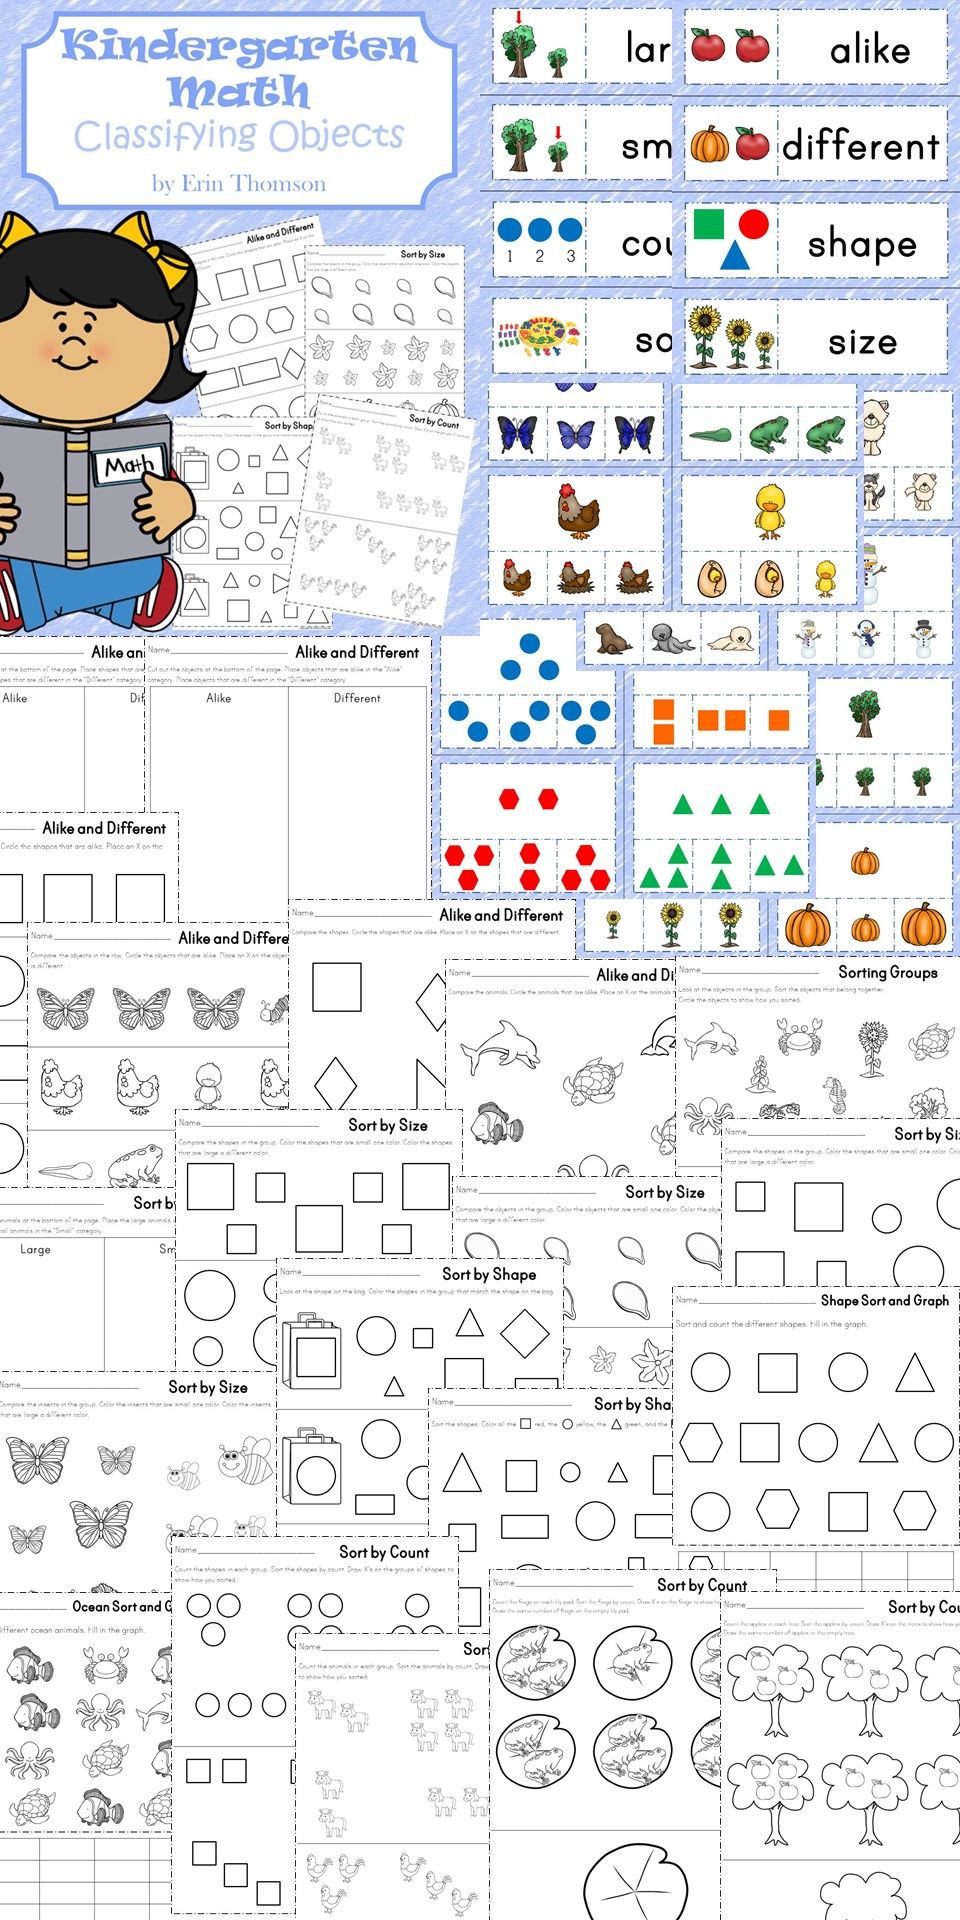 Kindergarten Math sorting Worksheets Kindergarten Math Classifying Objects